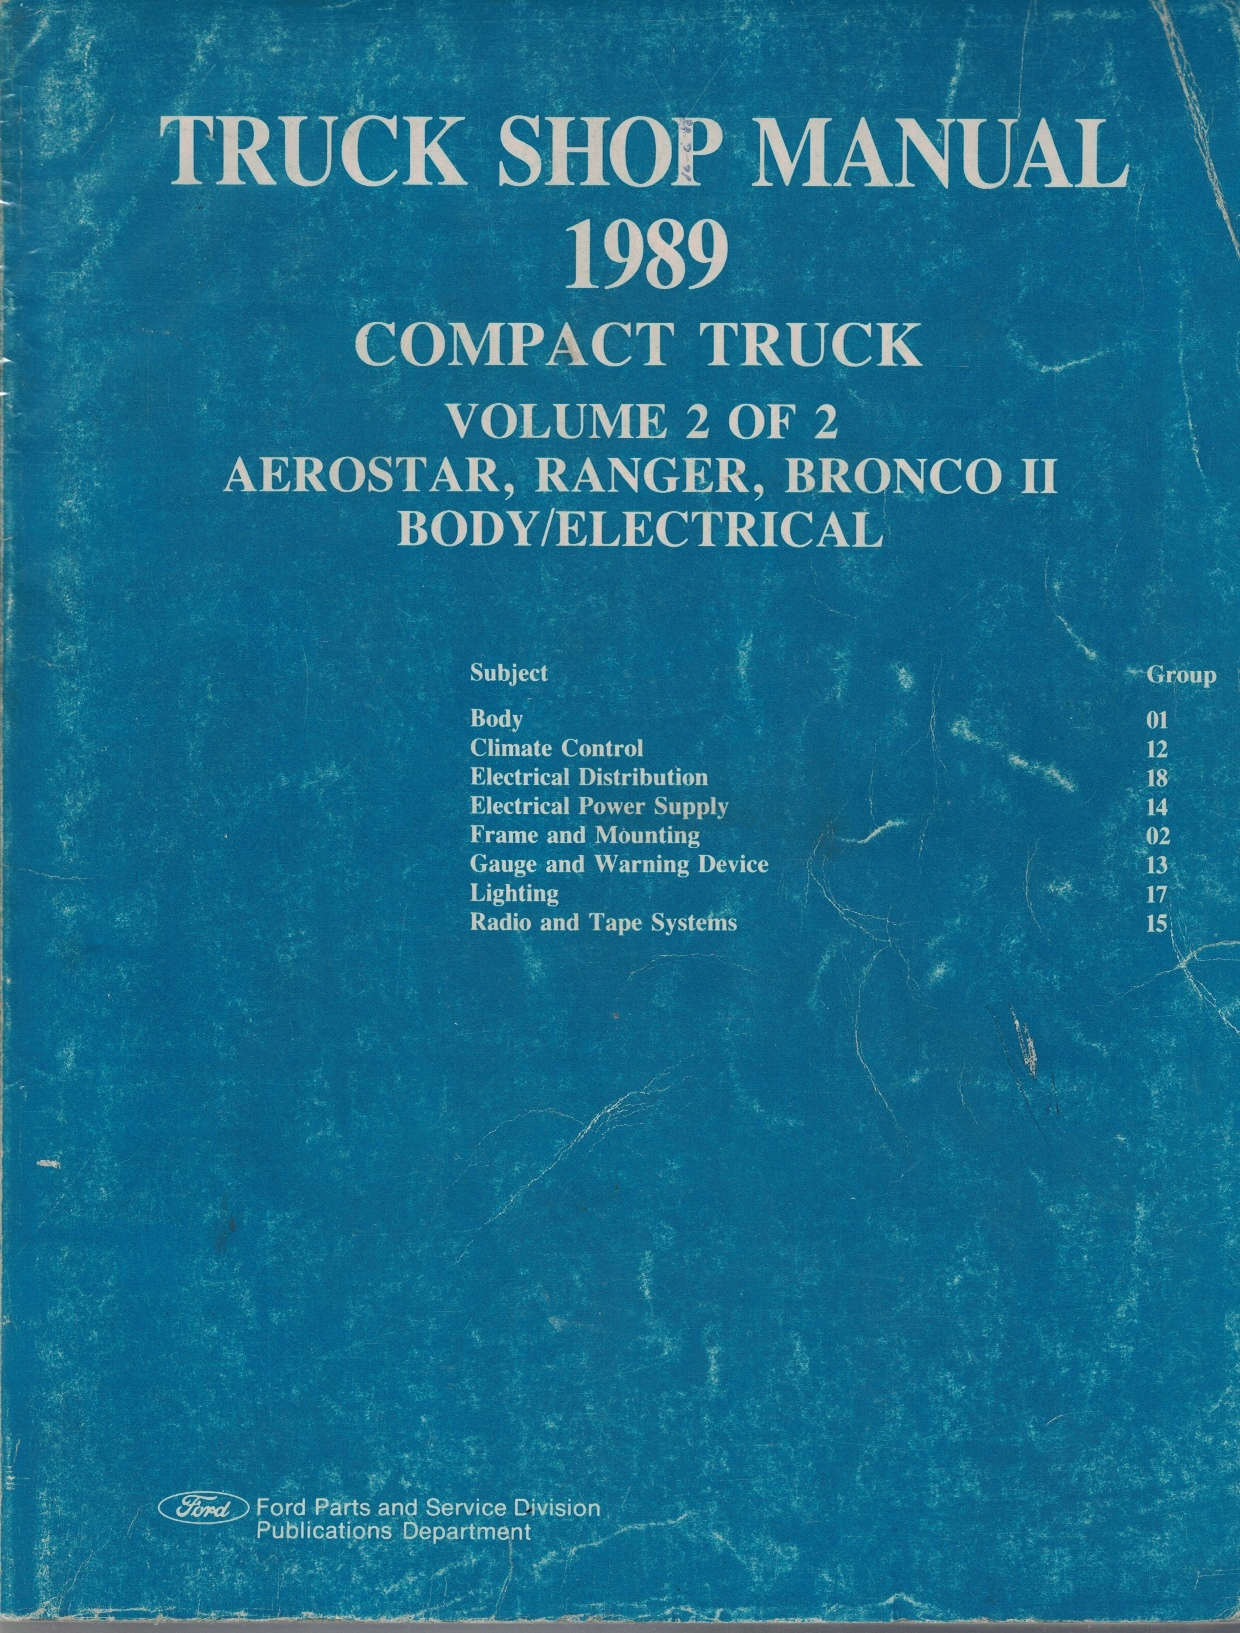 Image for 1989 Ford Truck Shop Manual, 2-volume Set: Compact Truck - Aerostar, Ranger, Bronco II; Engine/Chassis (Volume 1 of 2) and Body/Electrical (Volume 2 of 2) [Original Service Manual]